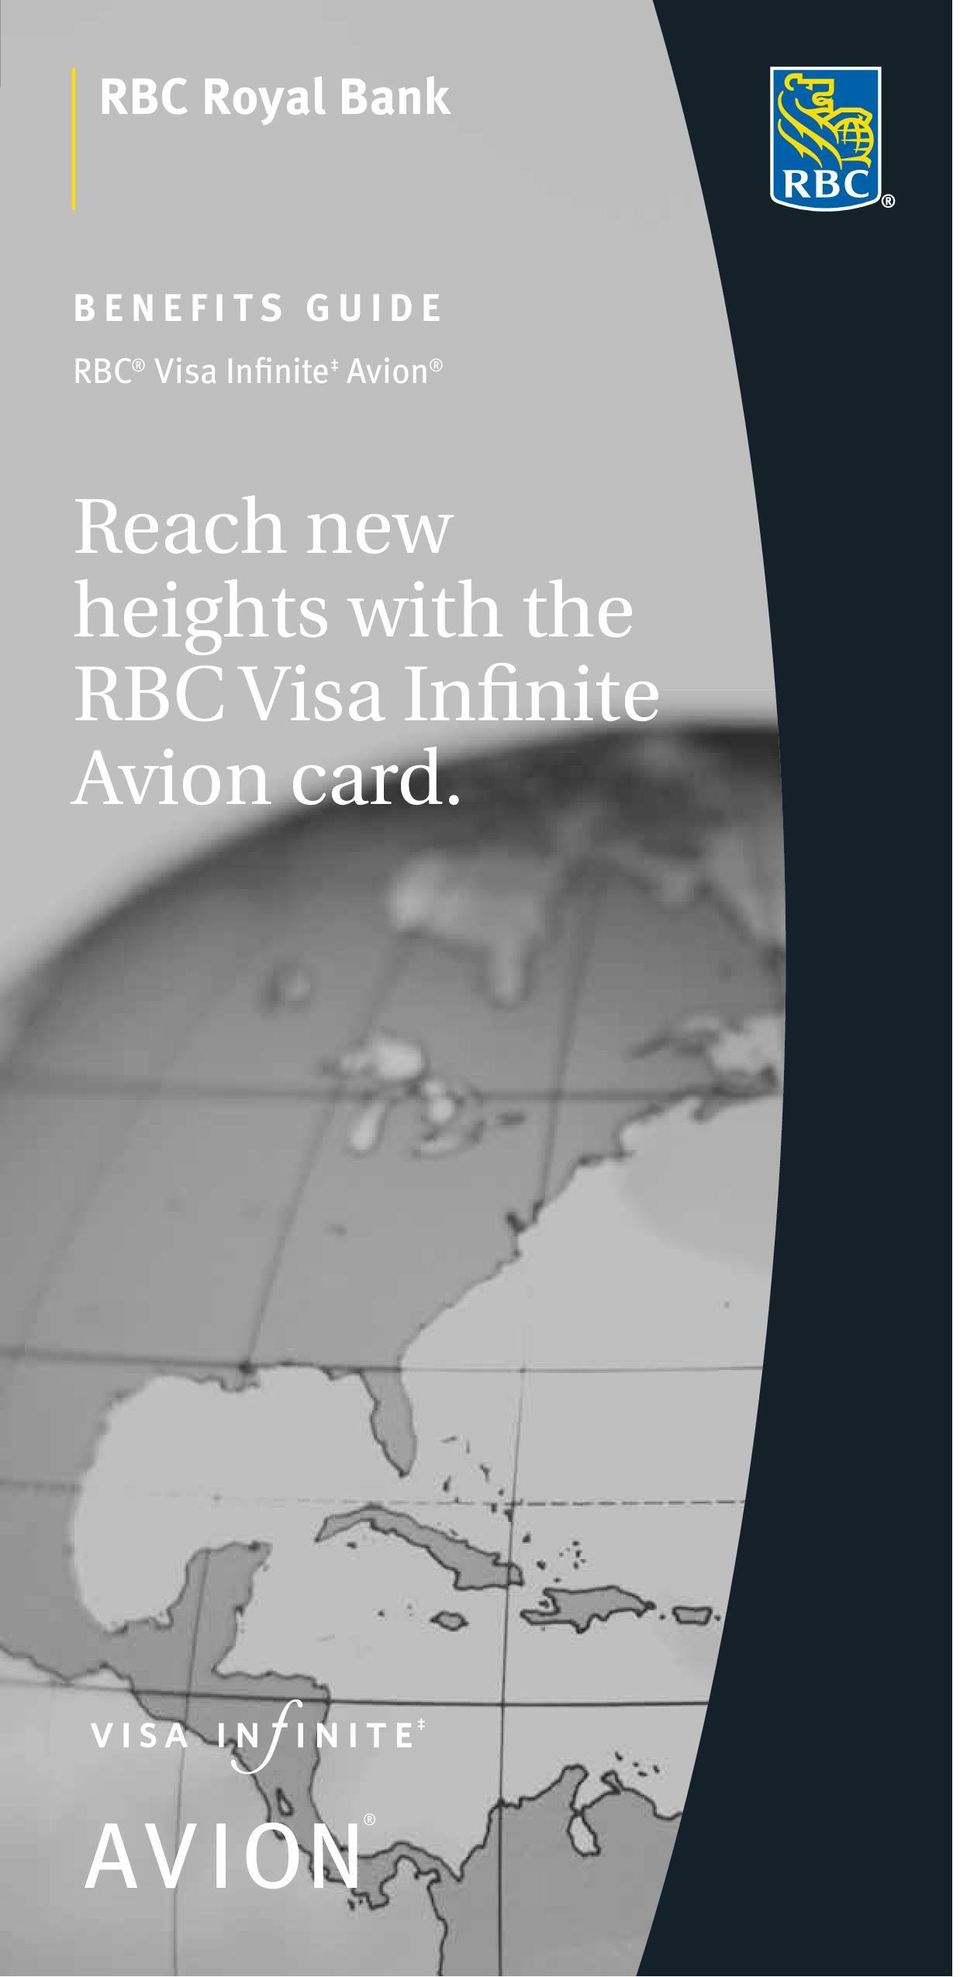 heights with the RBC Visa